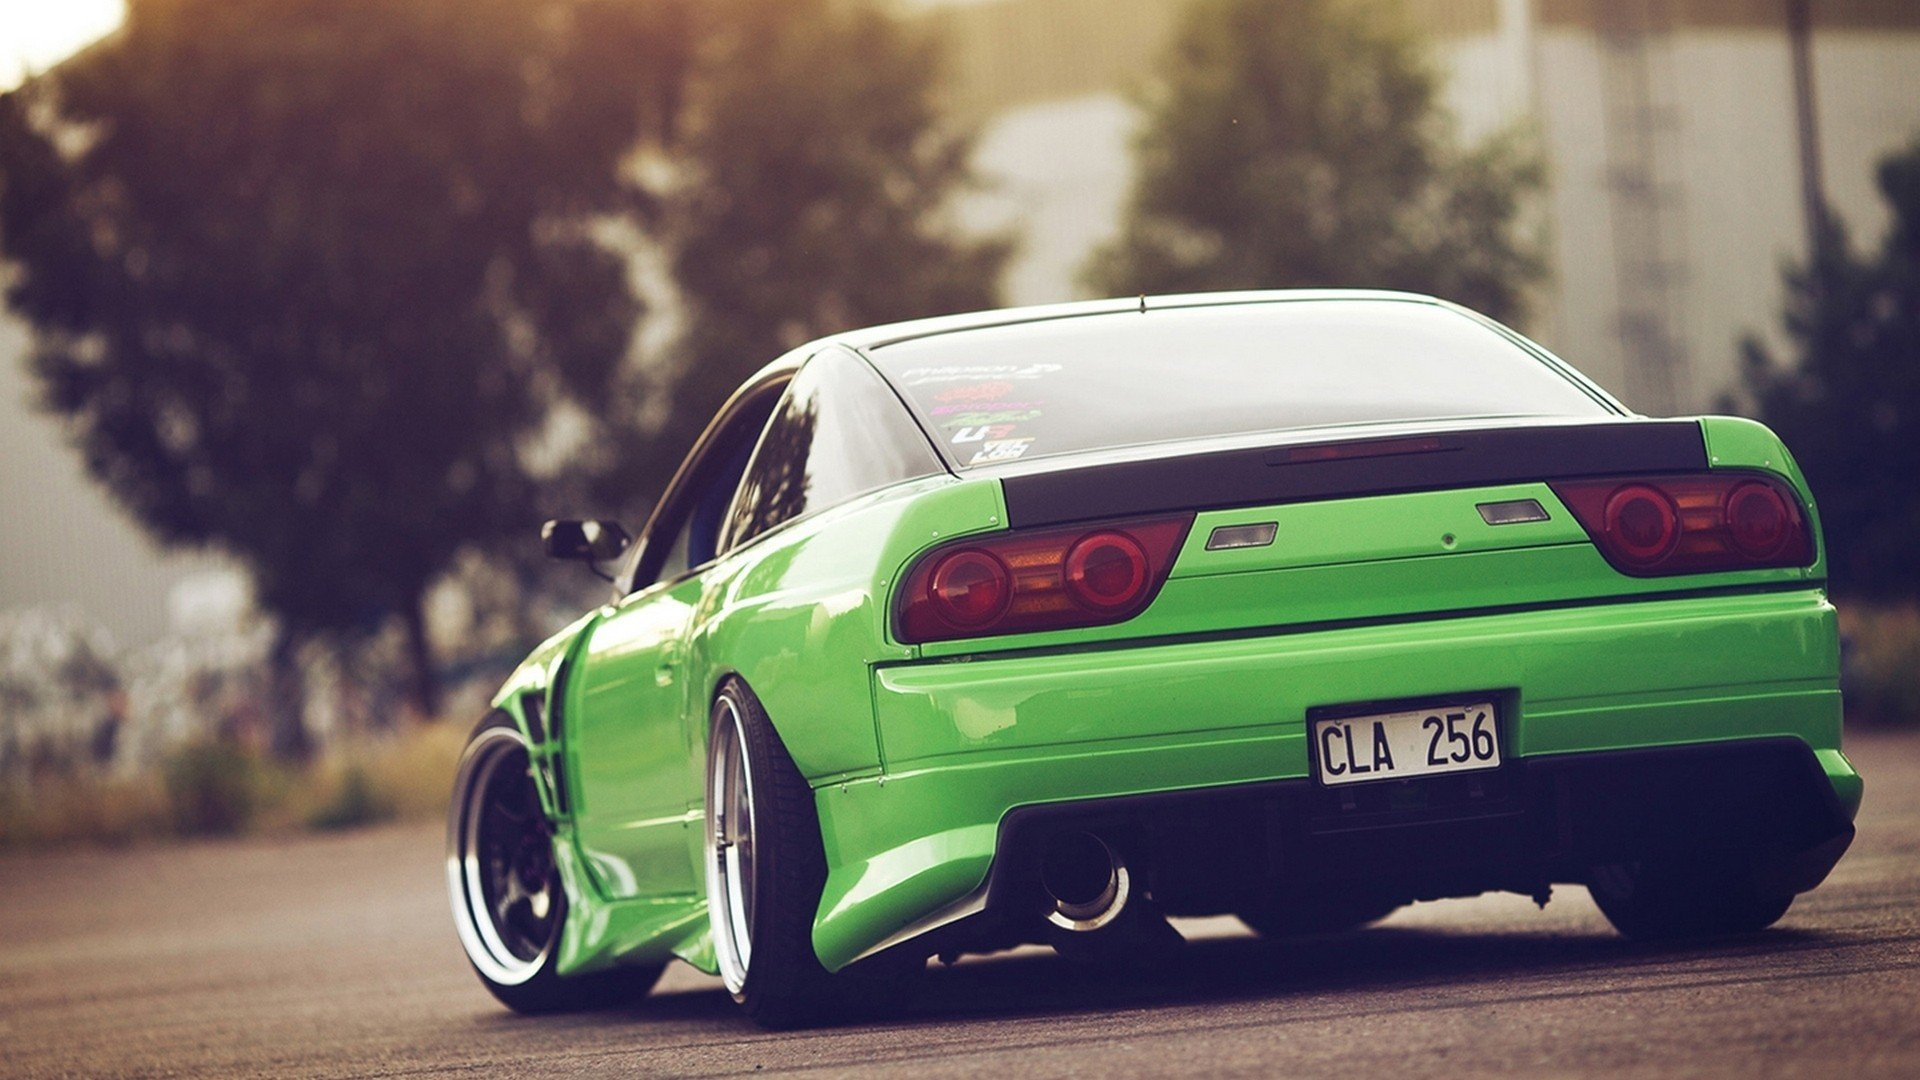 Nissan 240sx Coupe Japan Tuning Cars Wallpaper 1920x1080